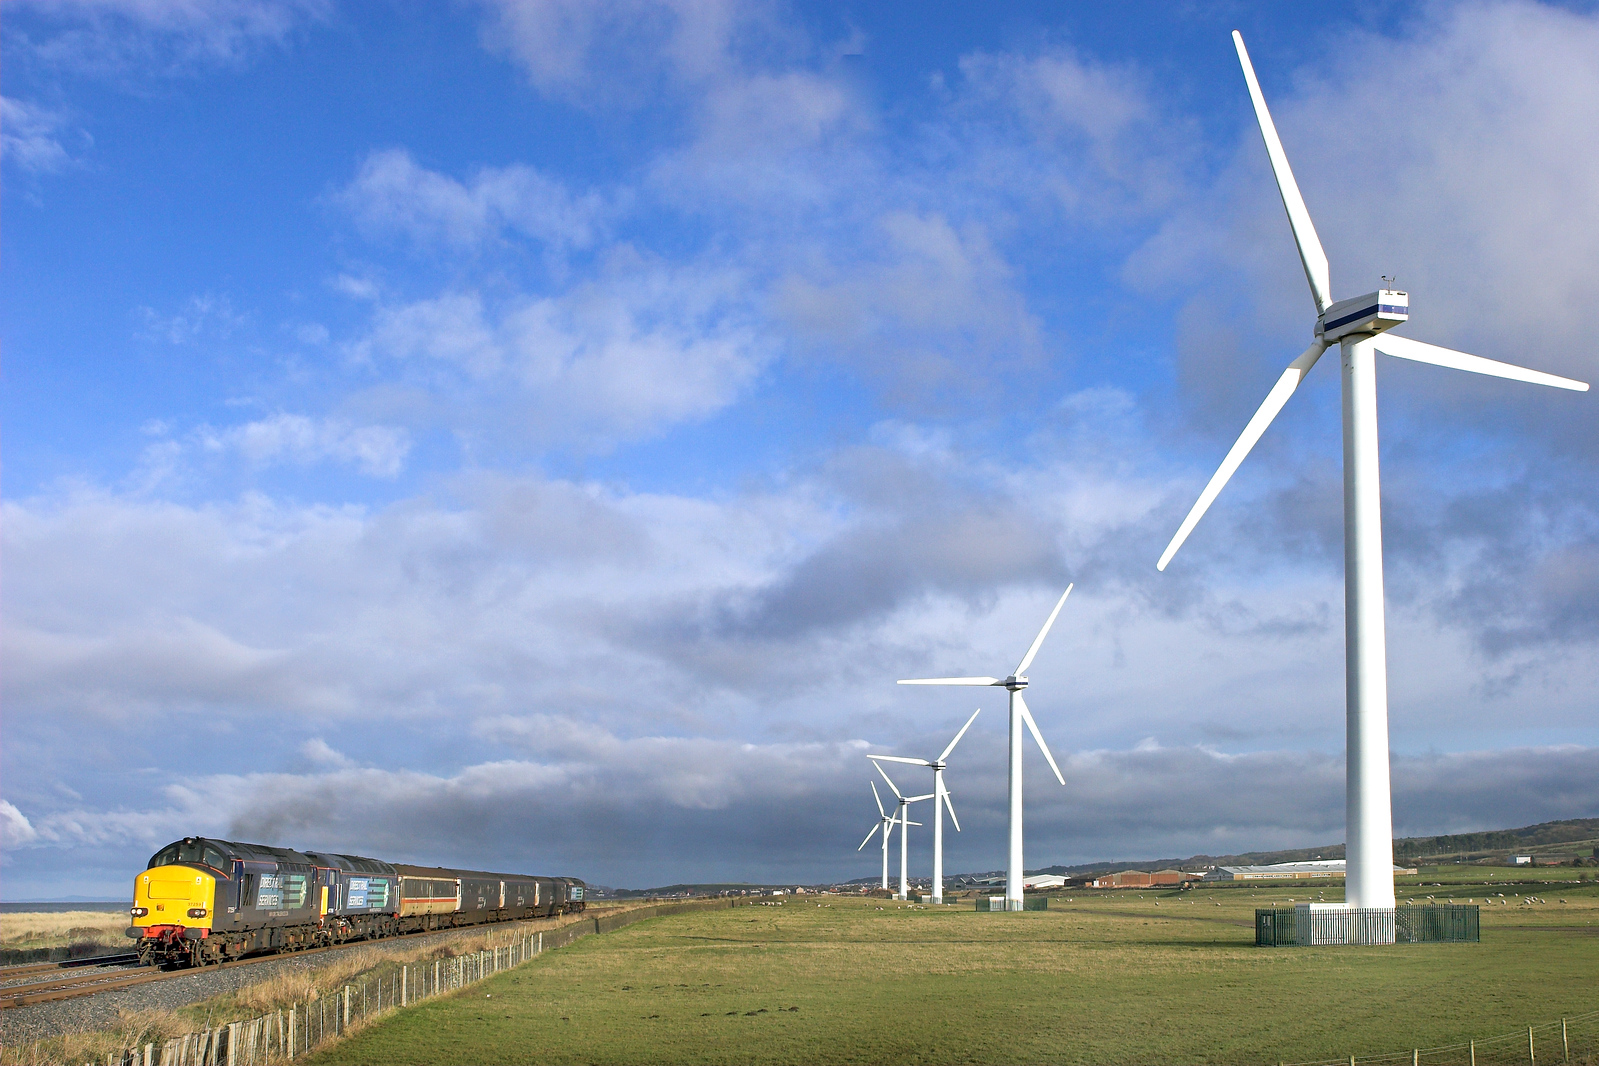 Unregistered RawShooter essentials 2005 1.1.3 build 15